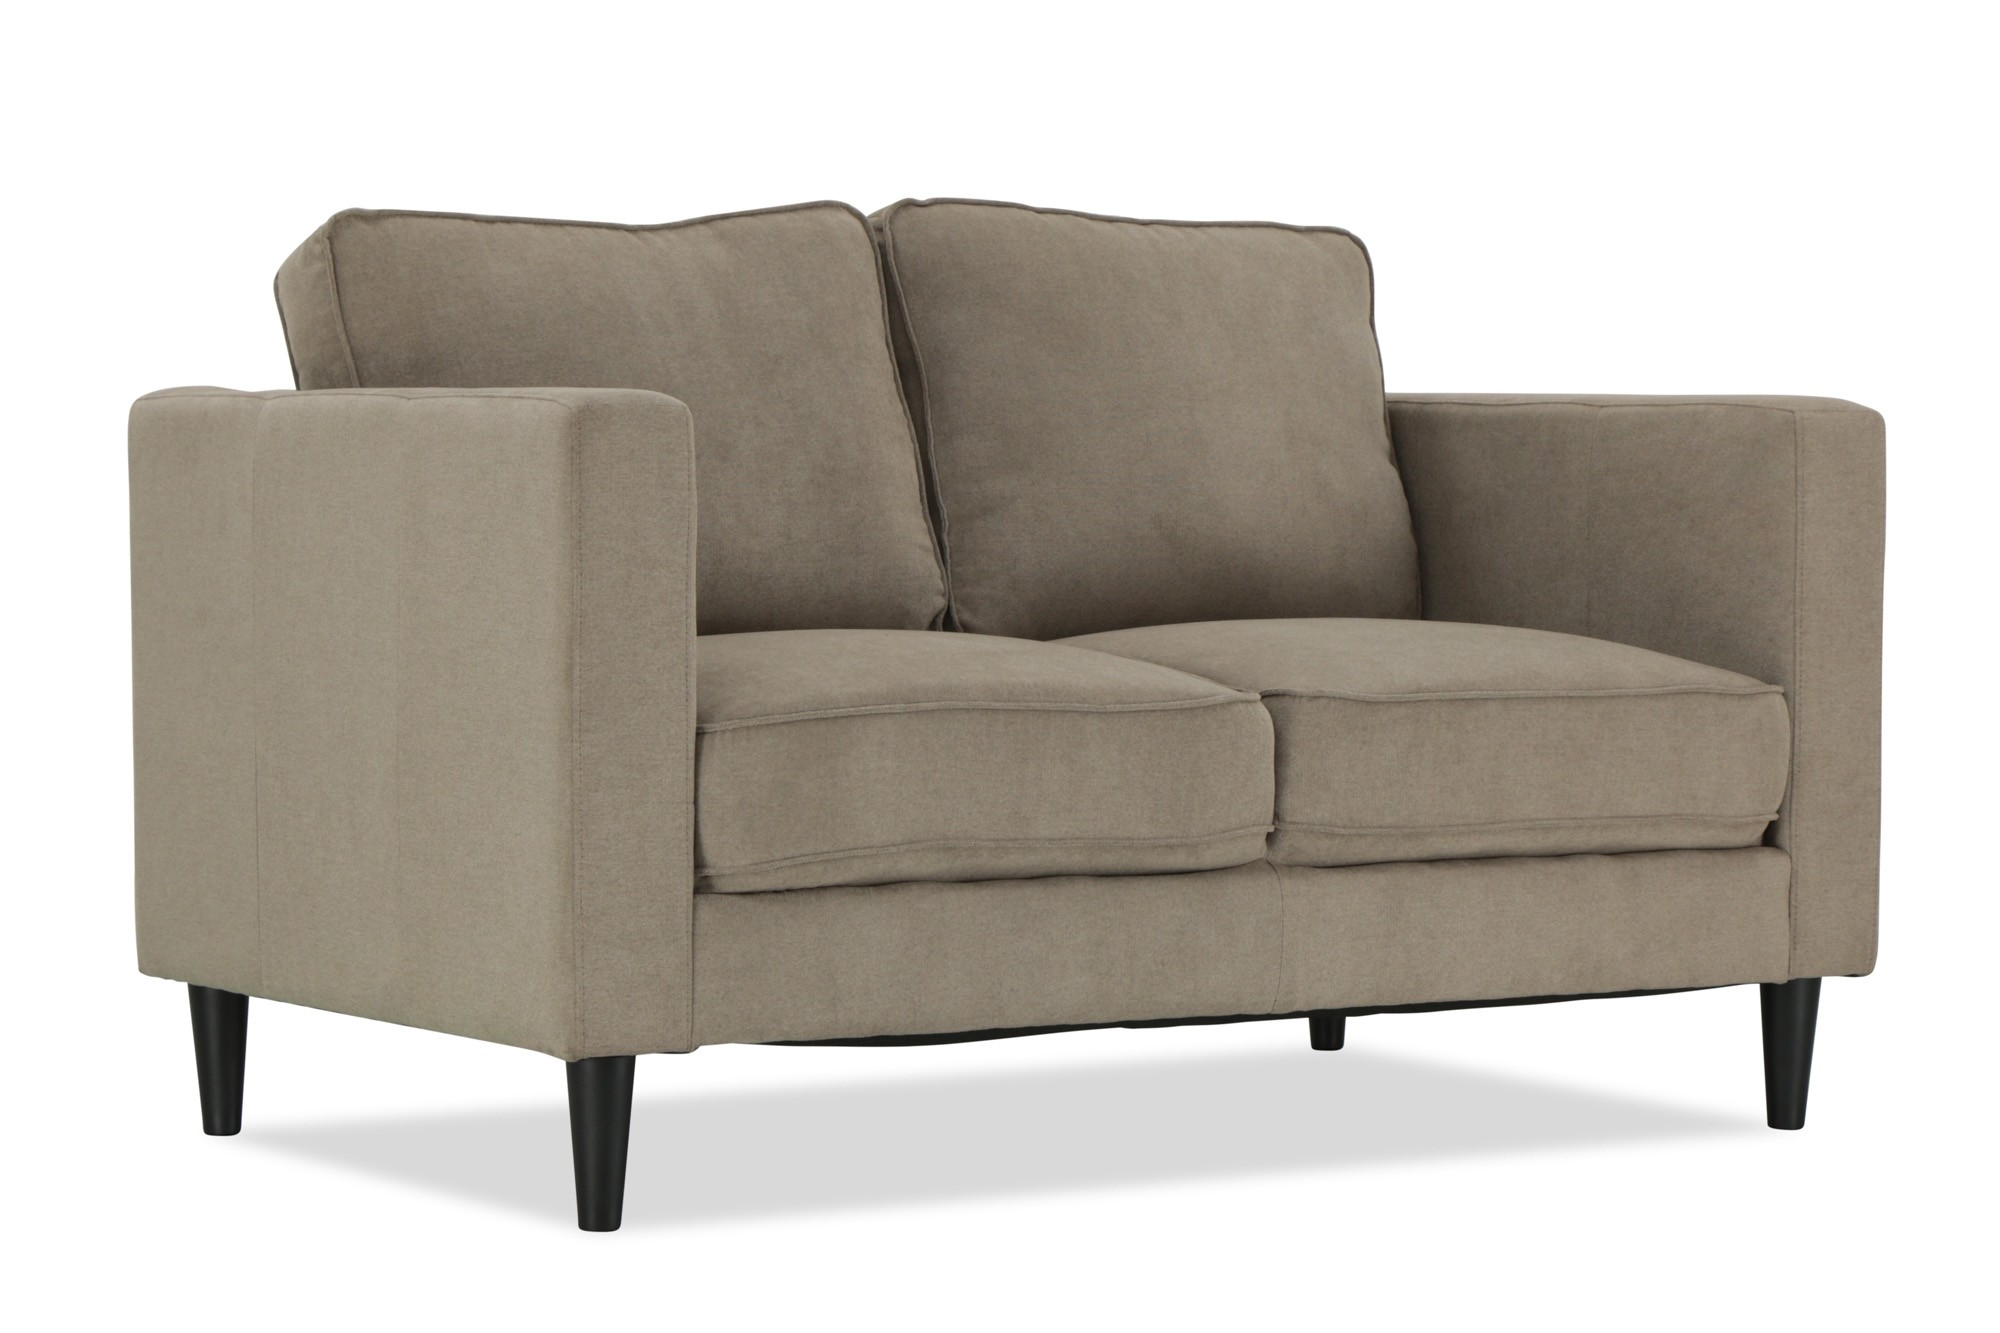 Sofa Taupe Fabian 2 Seater Sofa Taupe Furniture And Home Décor